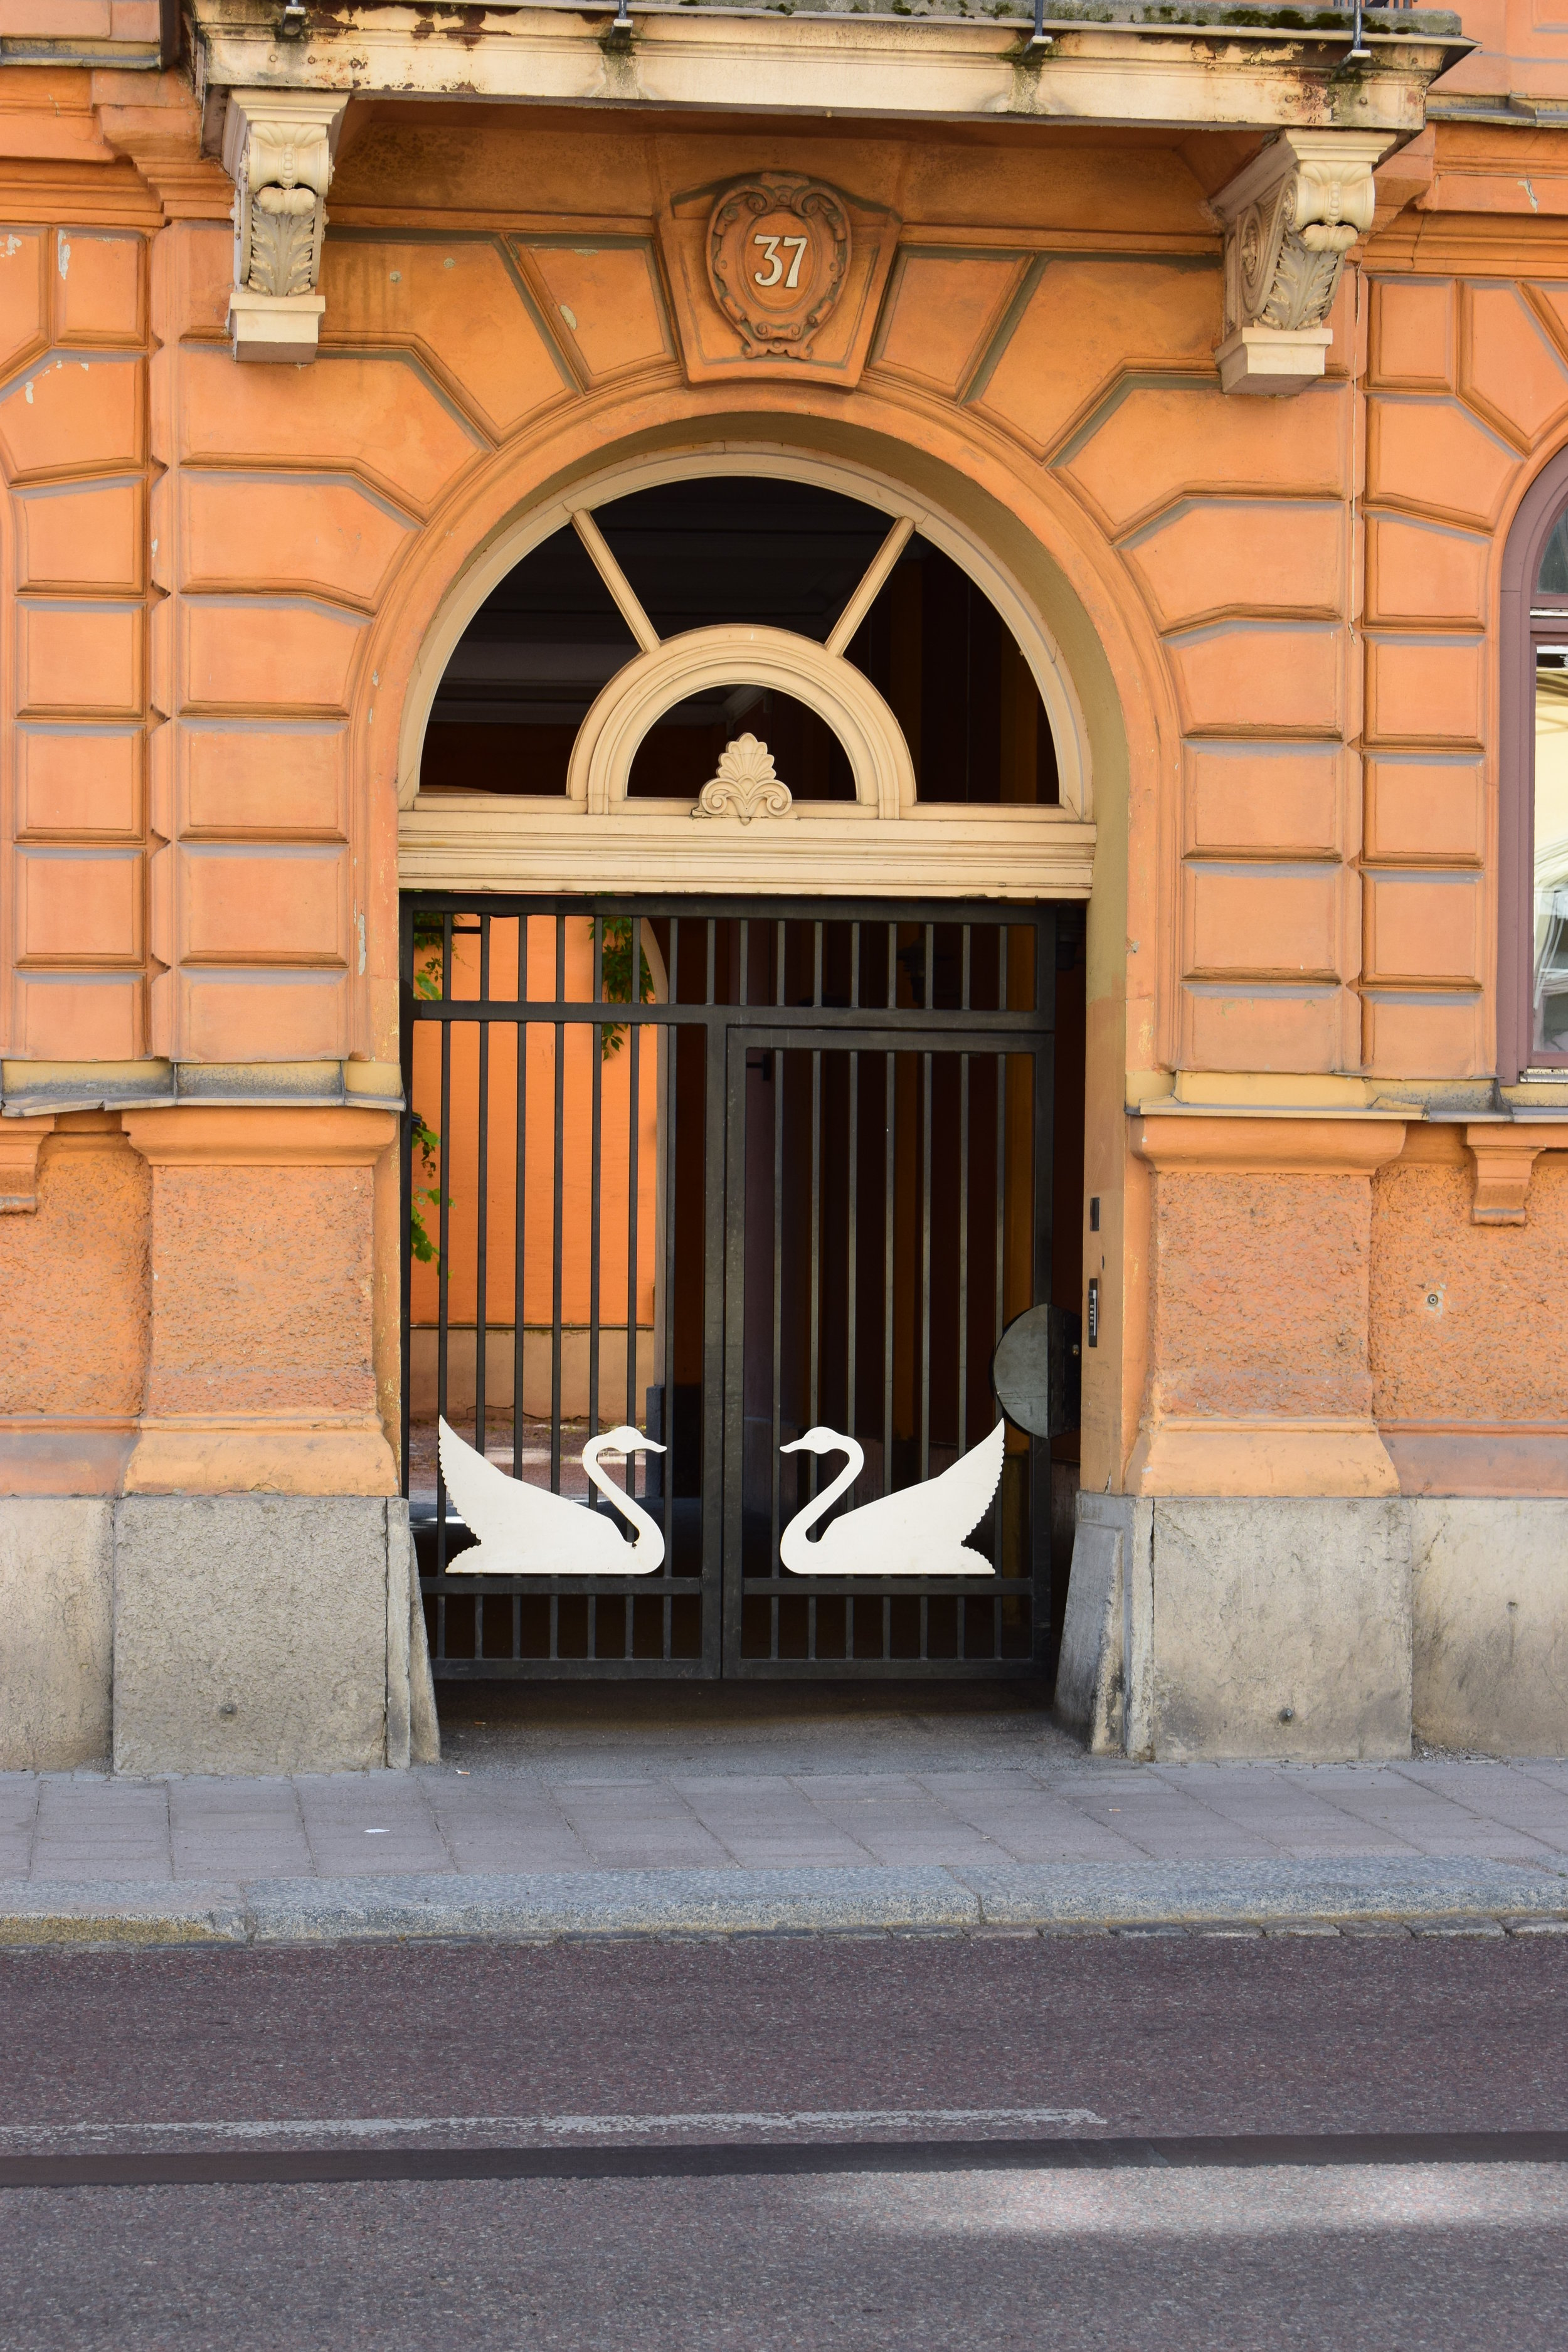 Swans as gate decoration, Uppsala